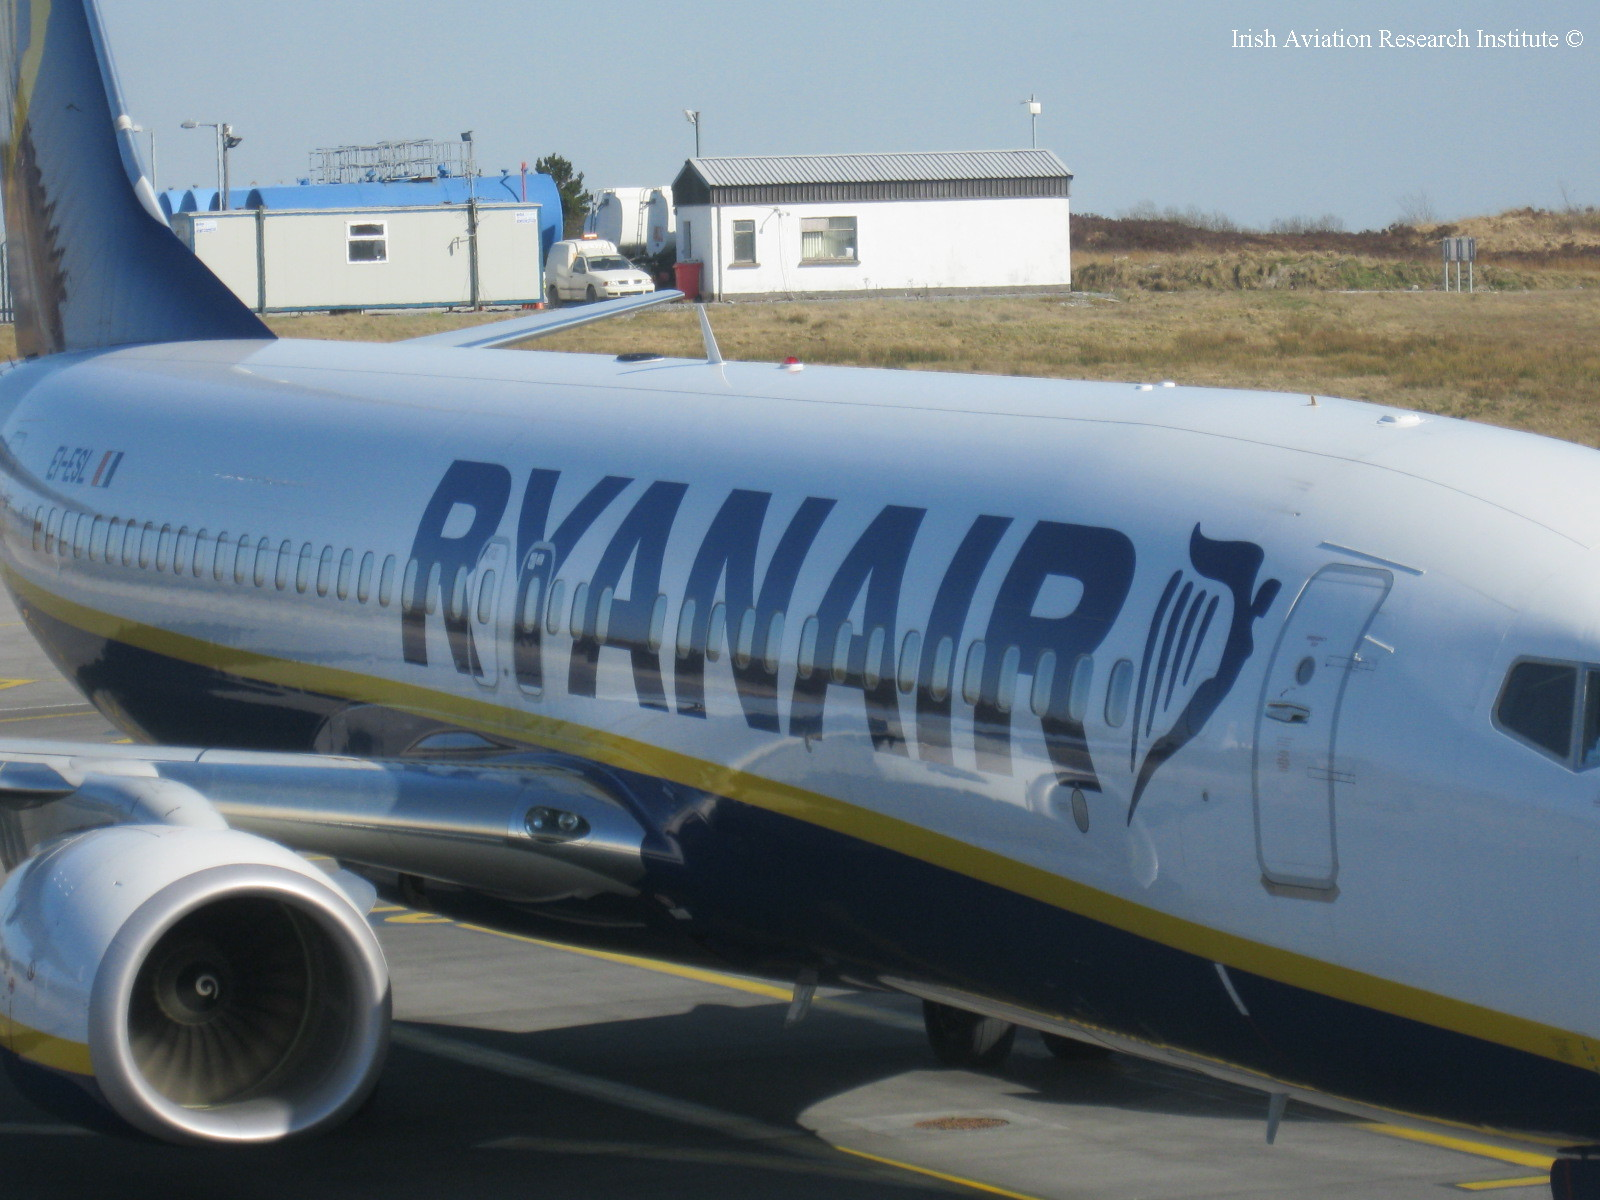 ryanair inc Are you considering adding ryanair (nasdaq:ryaay) stock to your your portfolio view ryaay's stock price, price target, analyst ratings, earnings history, financials, history, insider trades, news headlines and sec filings in real-time at marketbeat.